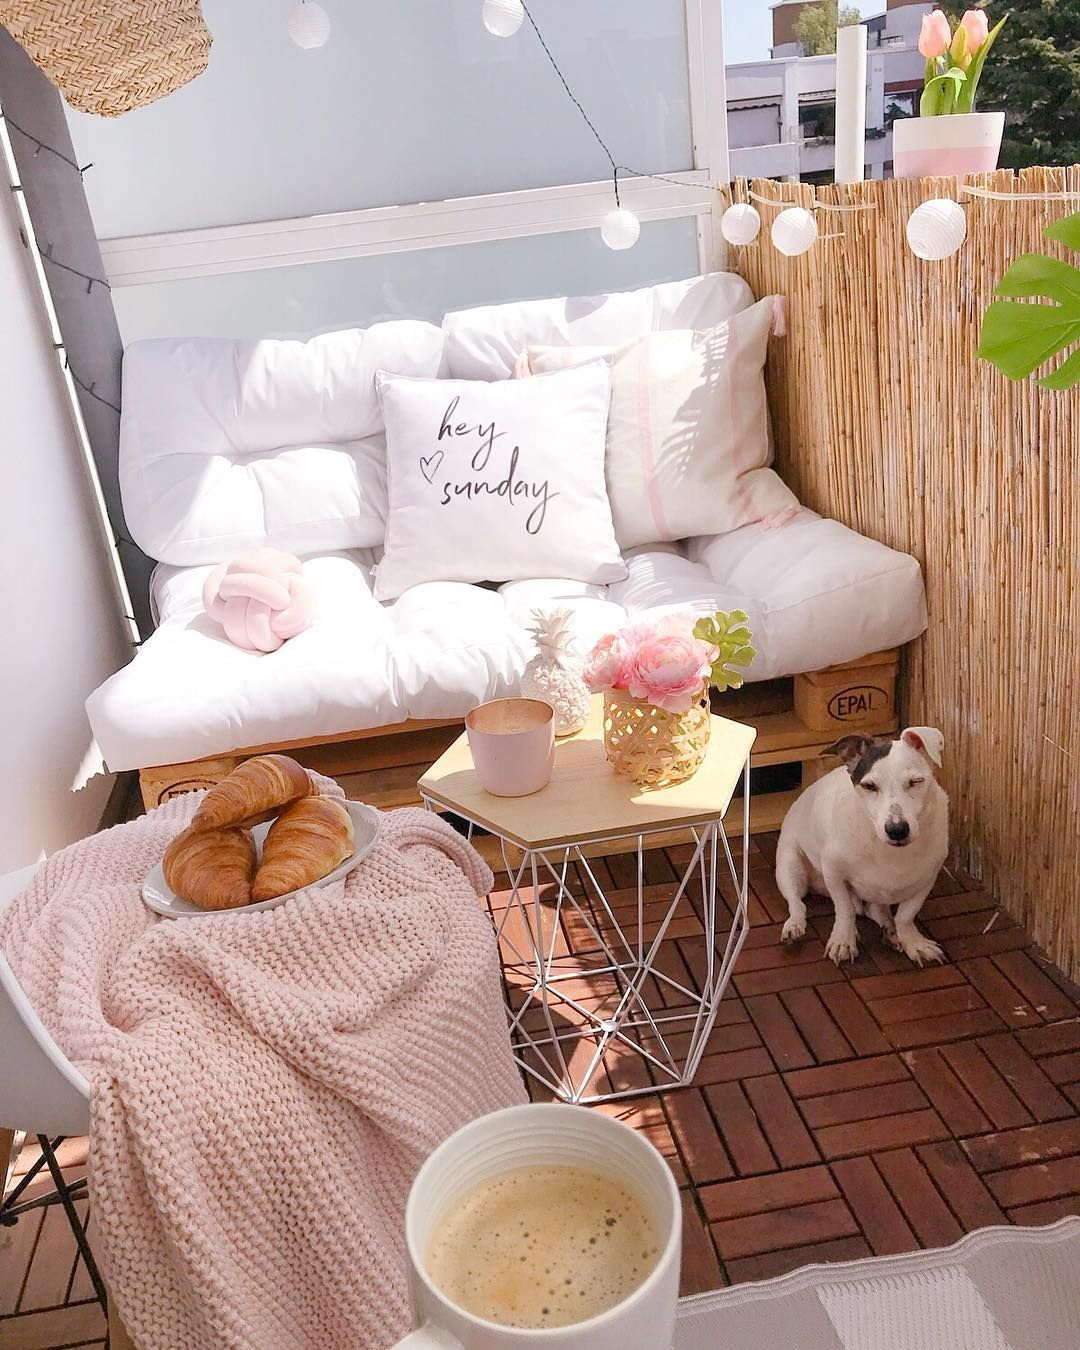 That's what cozy life looks like - still sleeping at noon ???????????? Just have a look at Gismo ???? I will pick up my besties… #smallbalconyfurniture